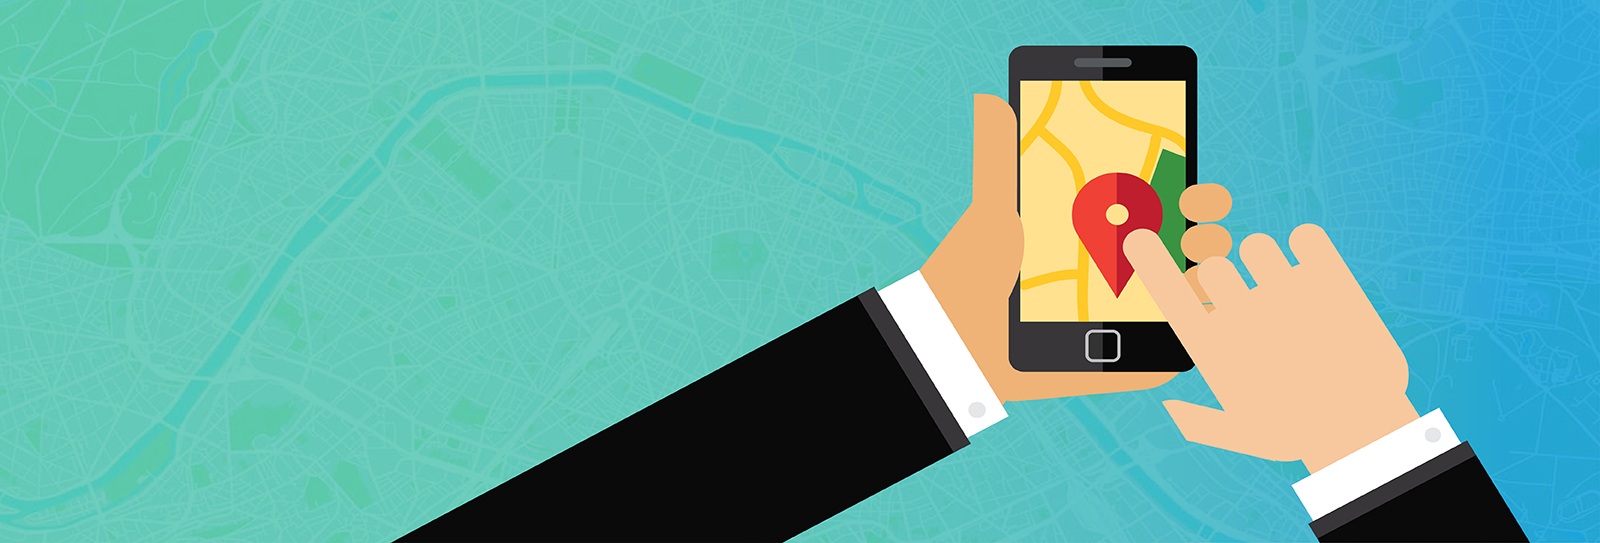 Infographic: Map Your Journey Towards Location Based Services